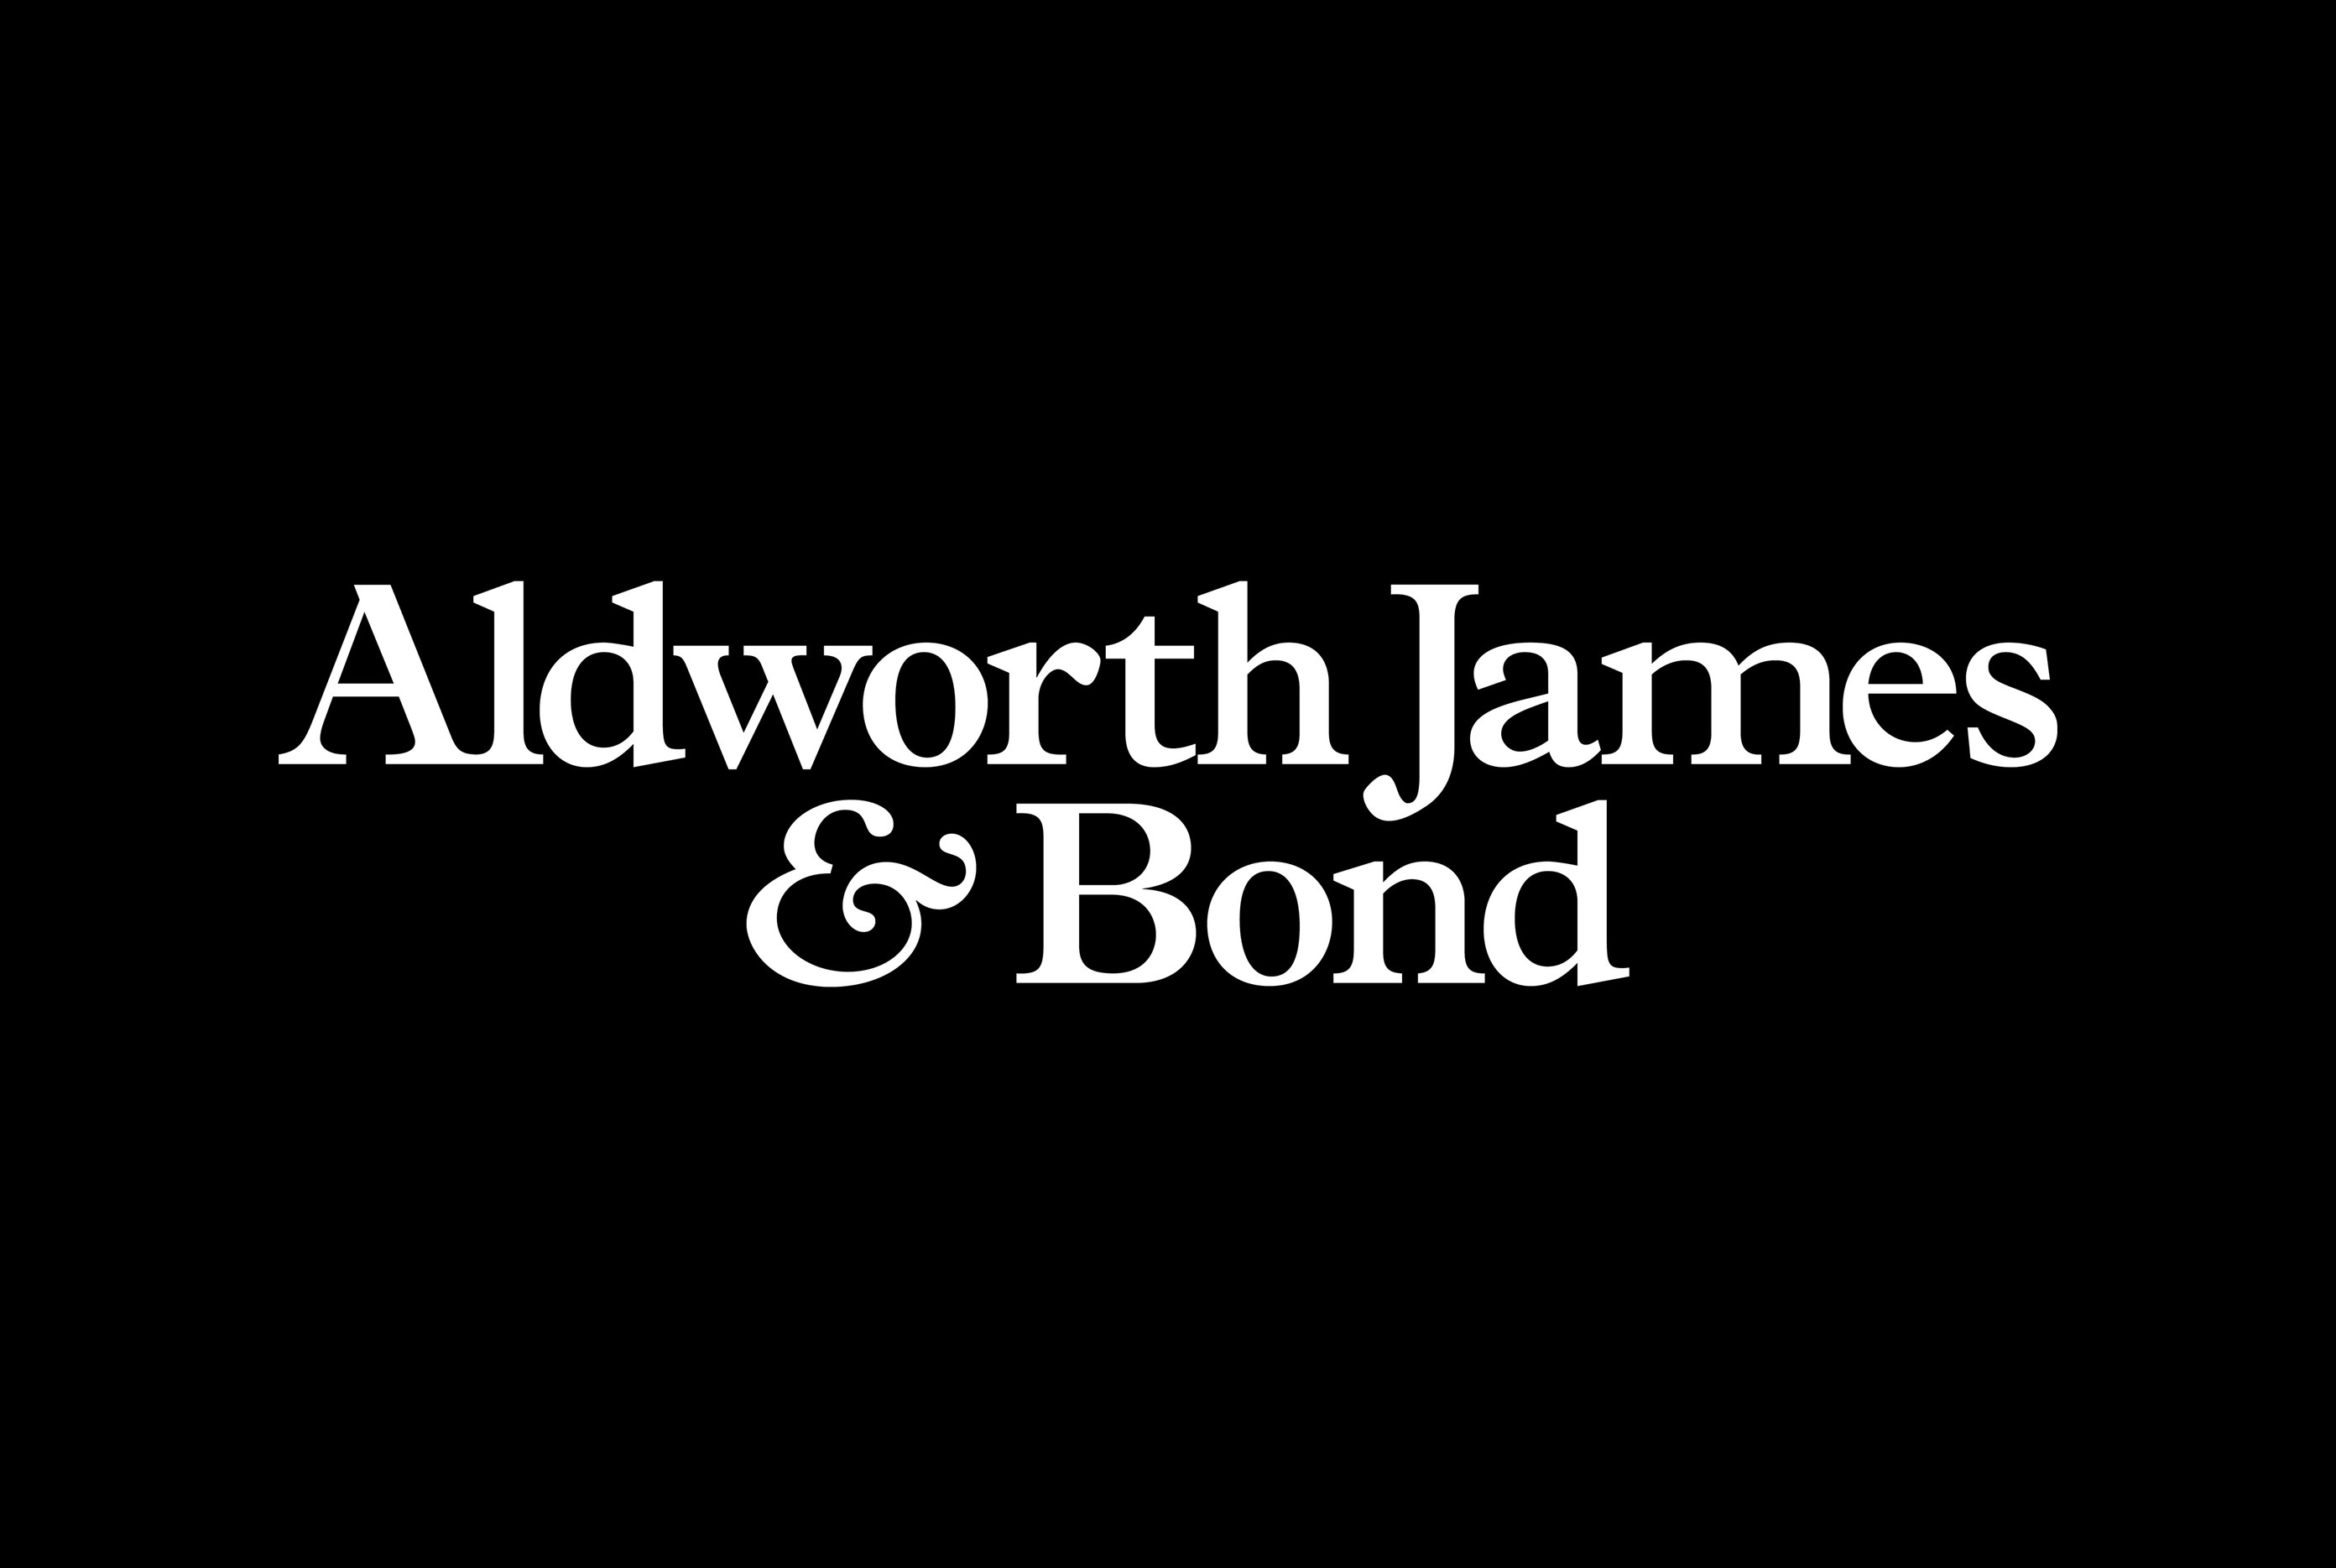 Aldworth James & Bond identity